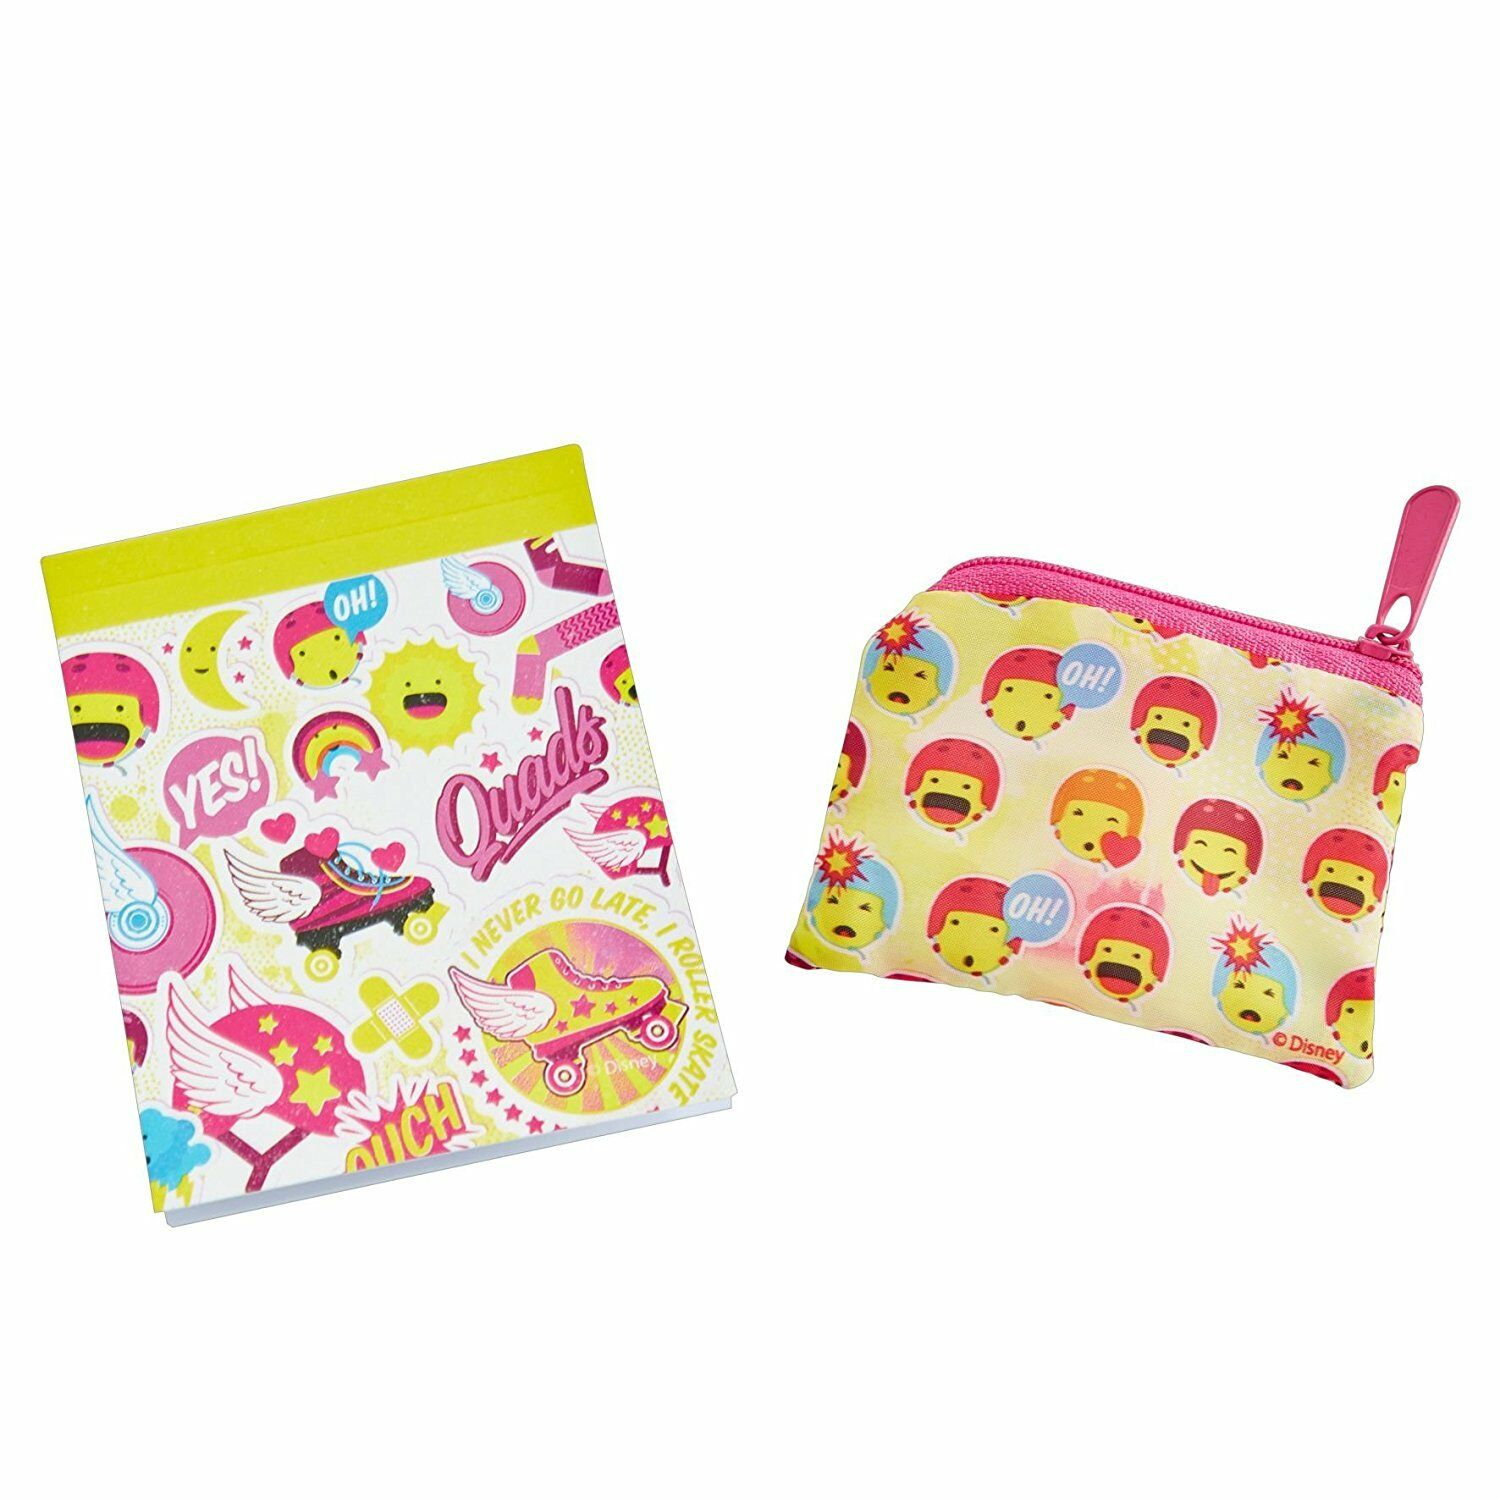 Soy Luna Cushion and Secret Bait Hide two in one with Mini Notebook and Wallet